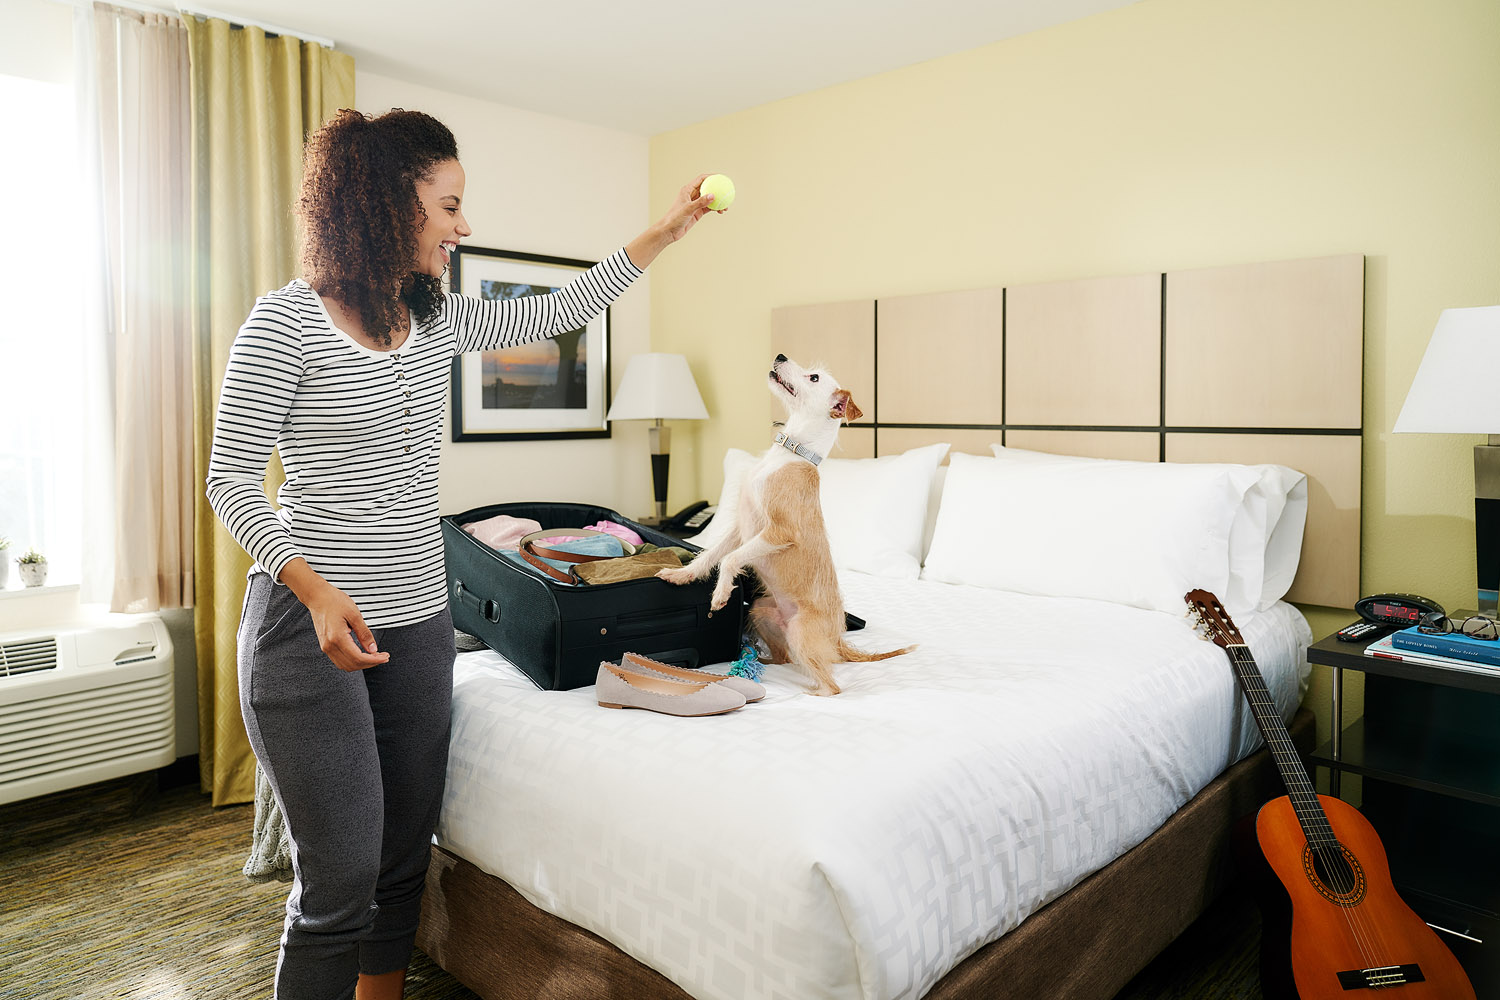 hales photo atlanta commercial hotel photography advertising campaign photographers production lifestyle georgia cws intercontinental hotels group-222.jpg